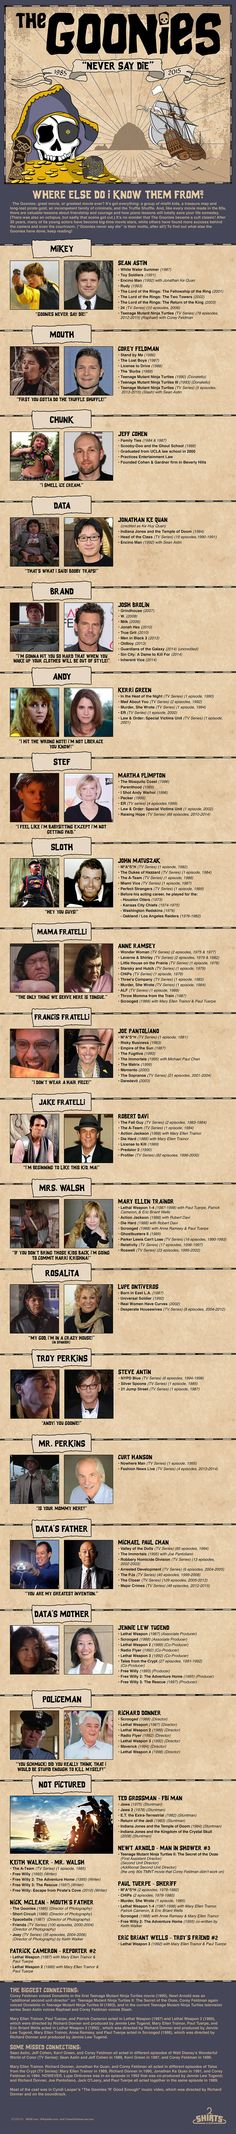 The Goonies Never Say Die #infographic #Goonies #Entertainment #Movies